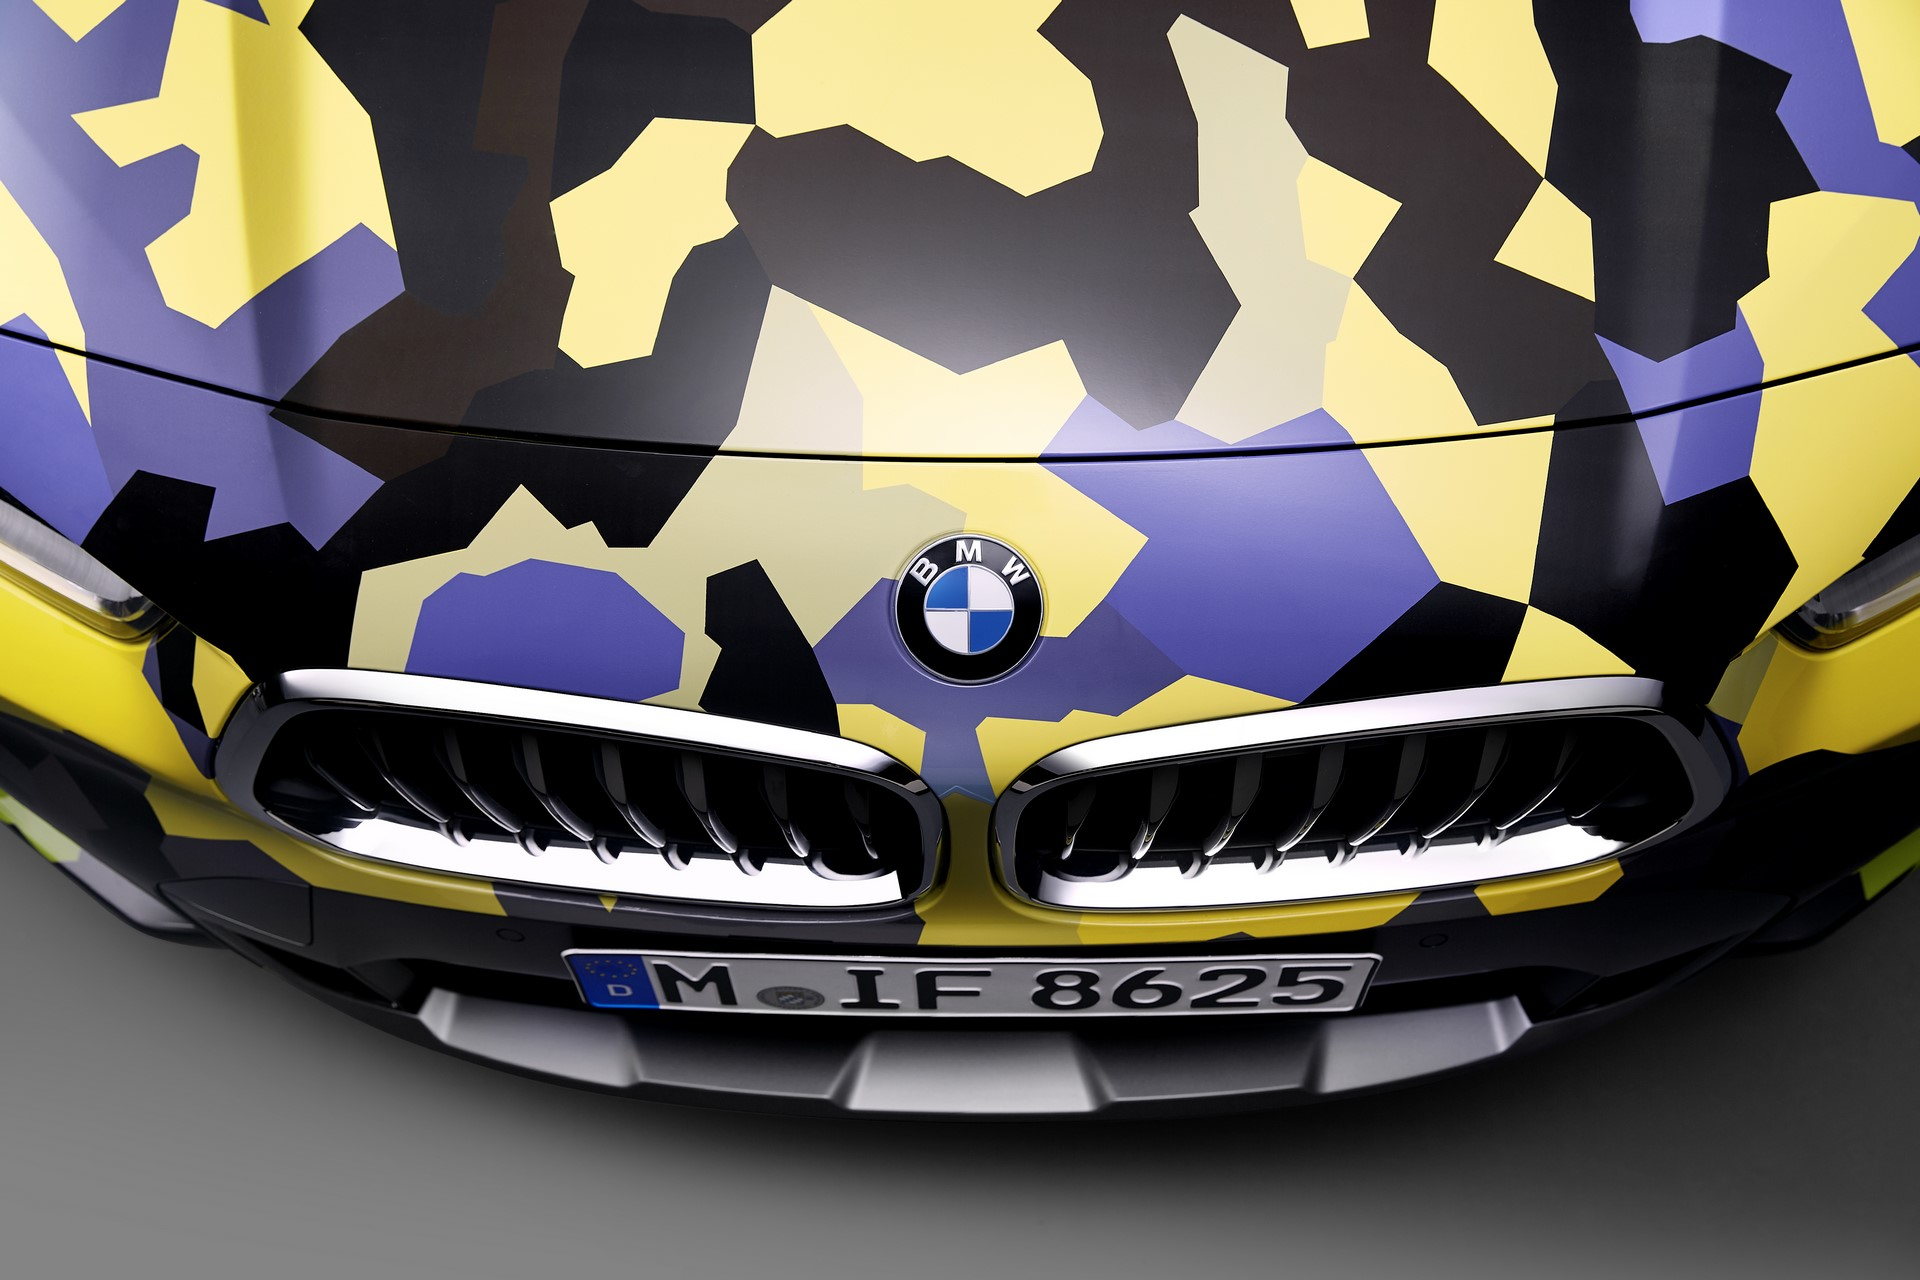 BMW X2 Digital Camo (8)